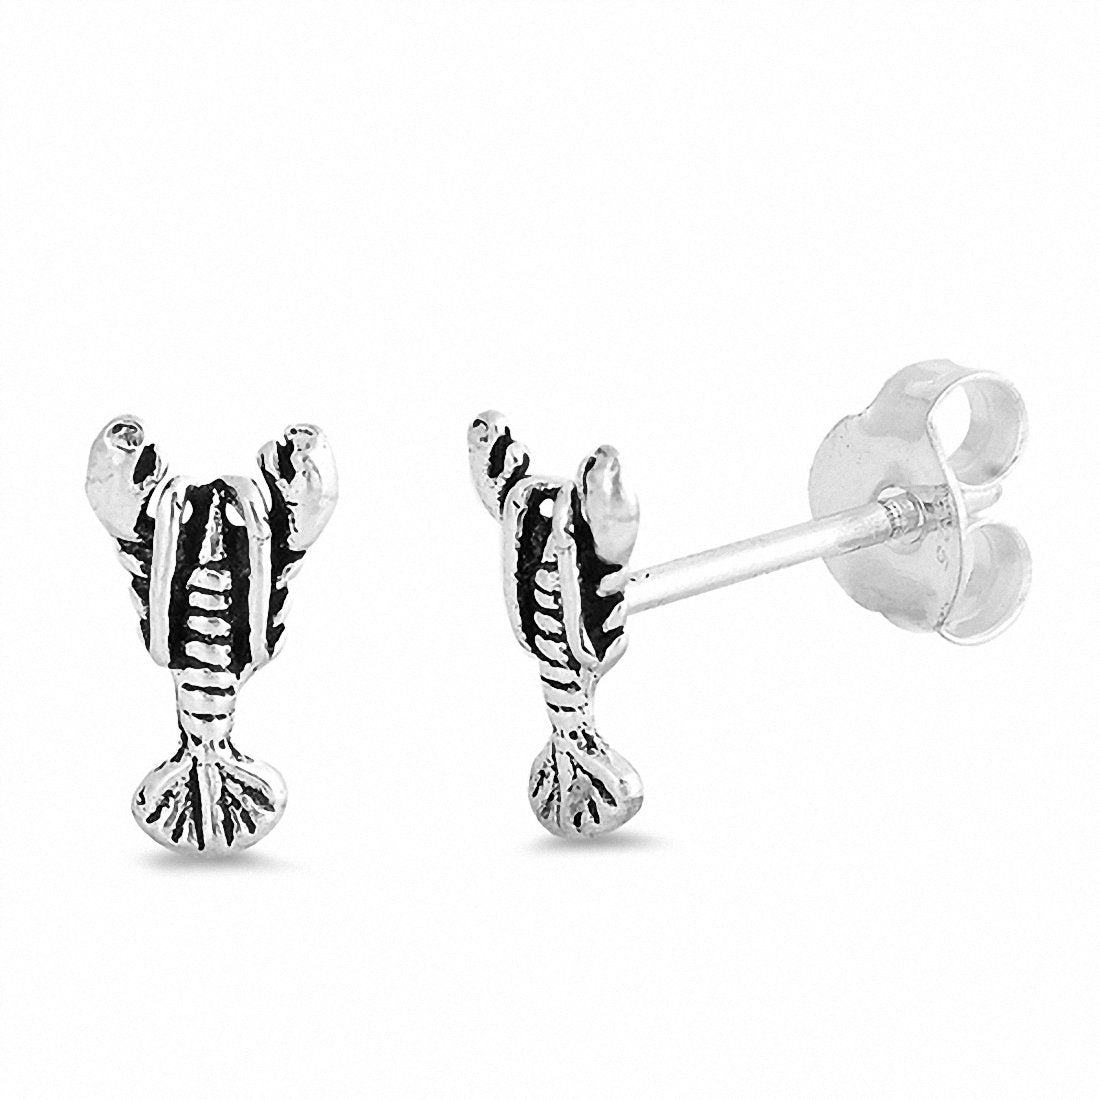 Tiny Lobster Stud Earrings 925 Sterling Silver Choose Color